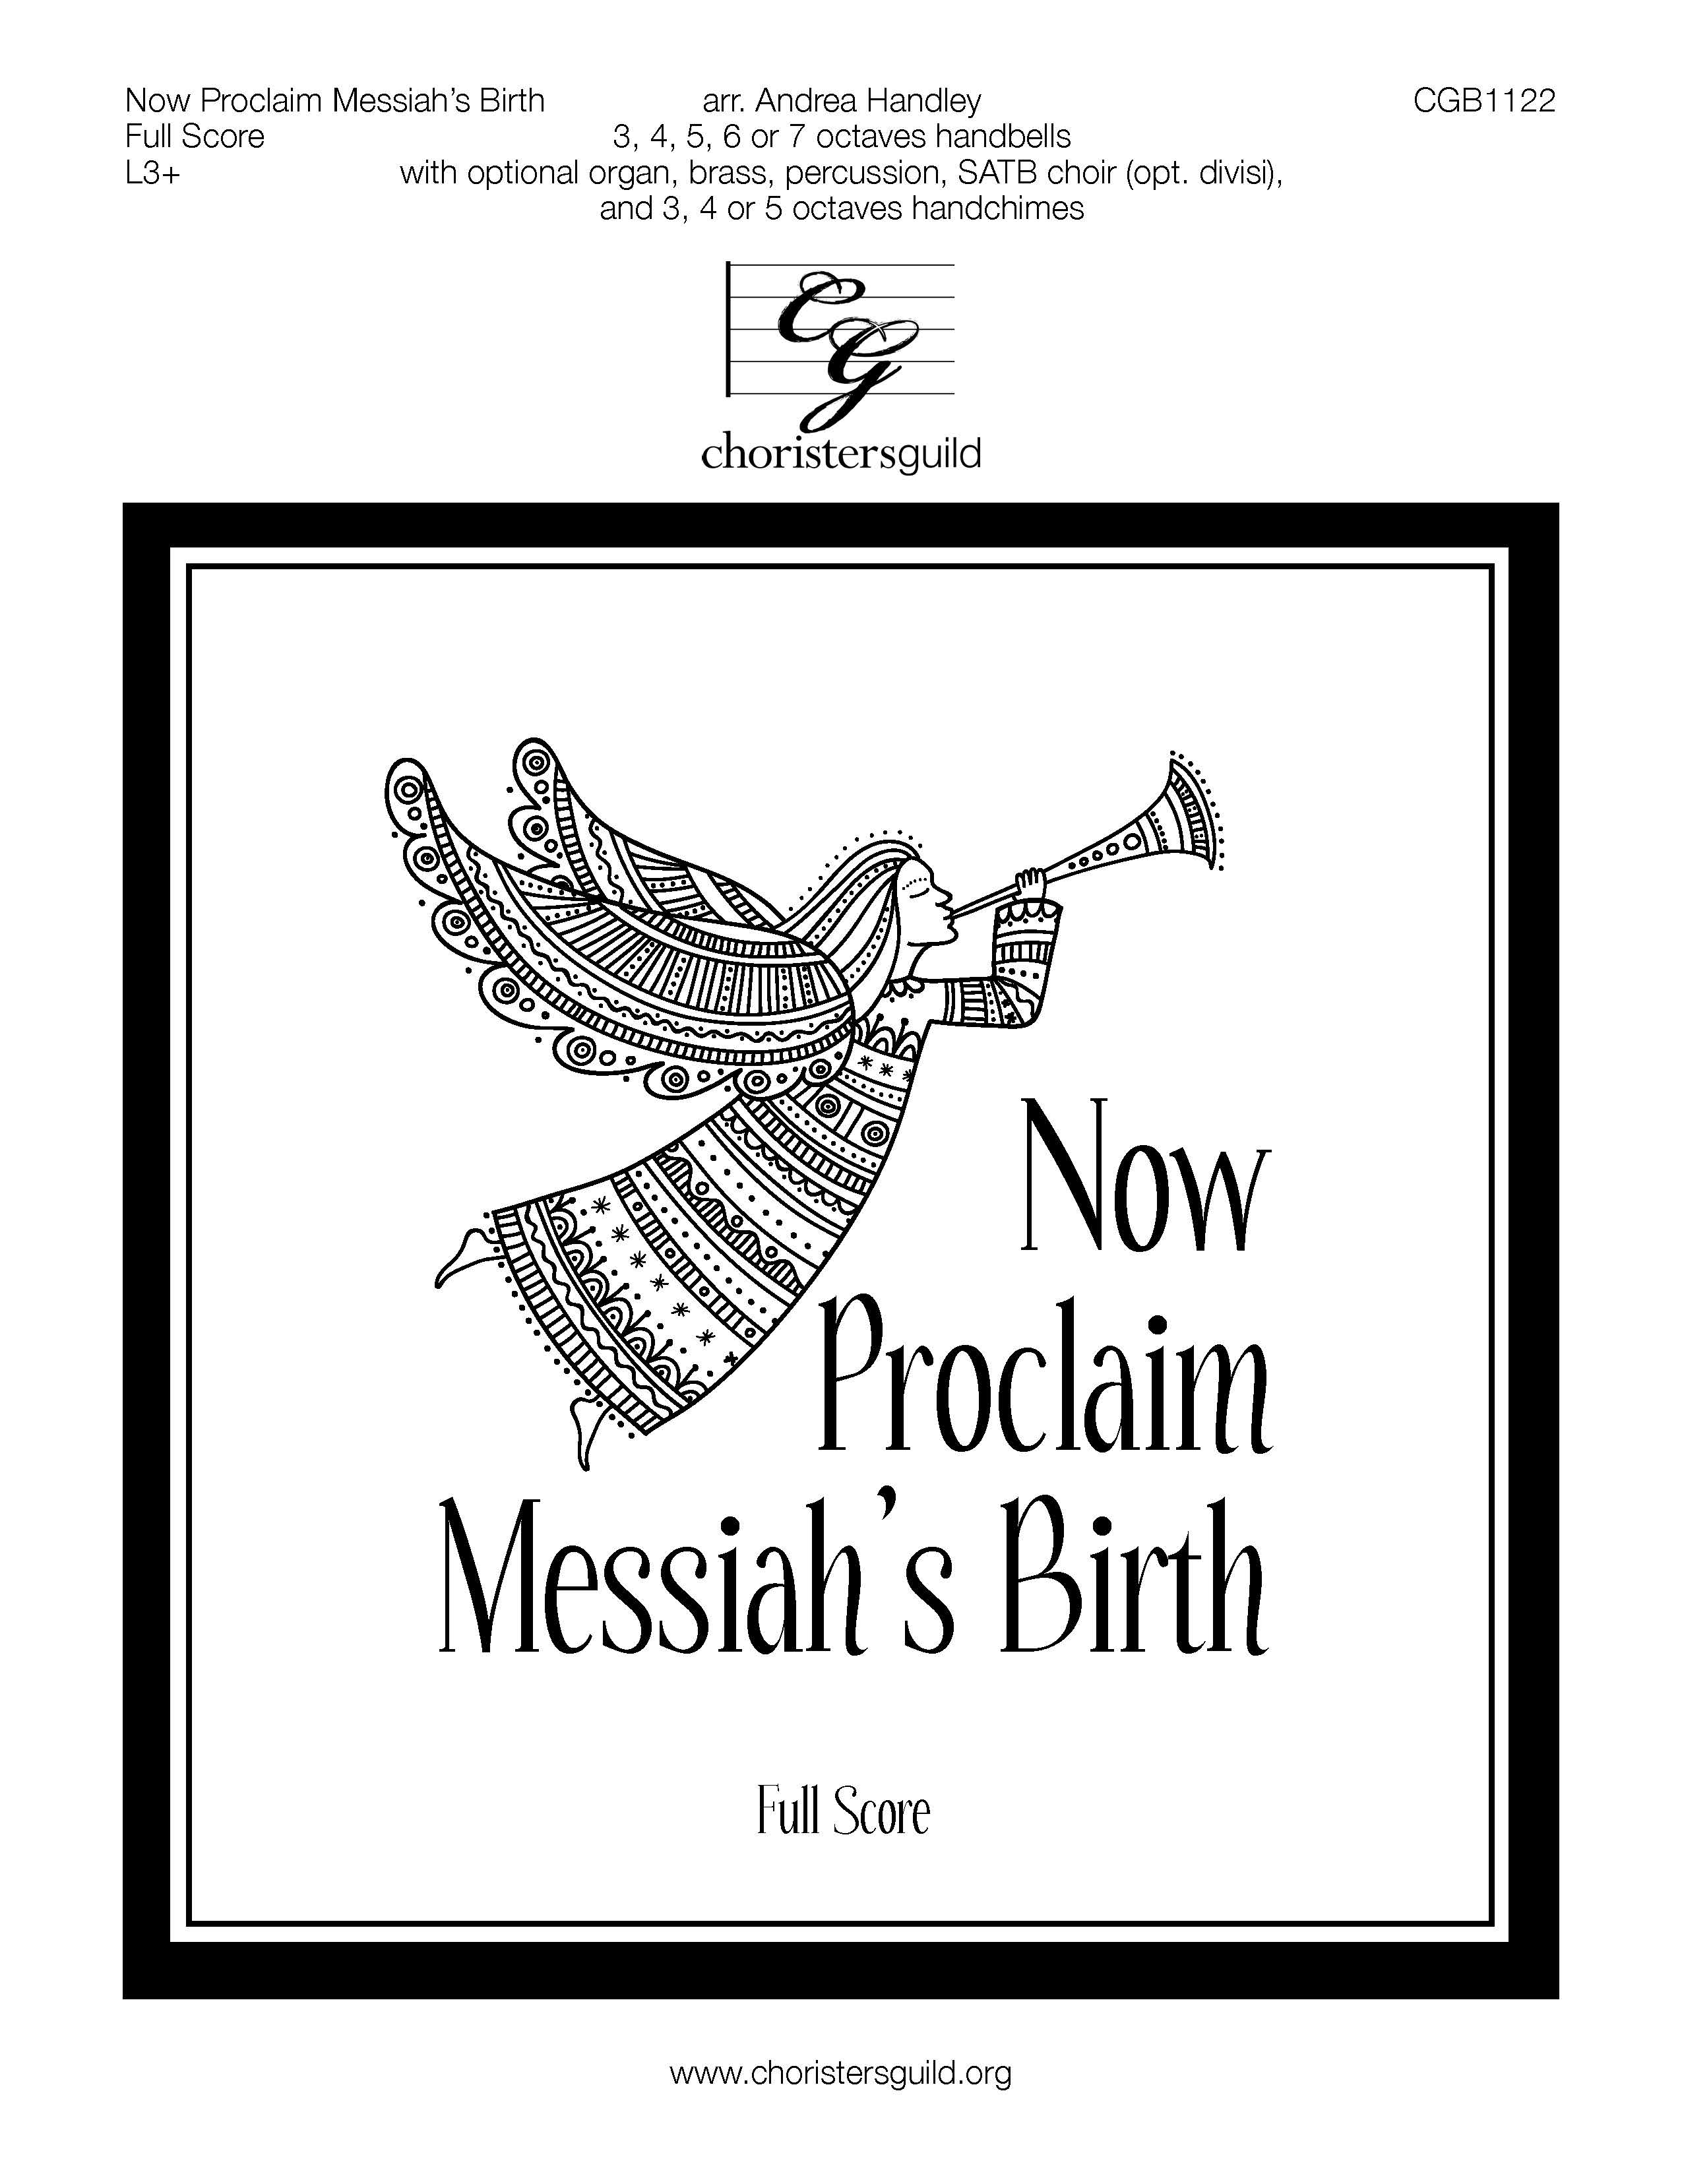 Now Proclaim Messiah's Birth - Full Score